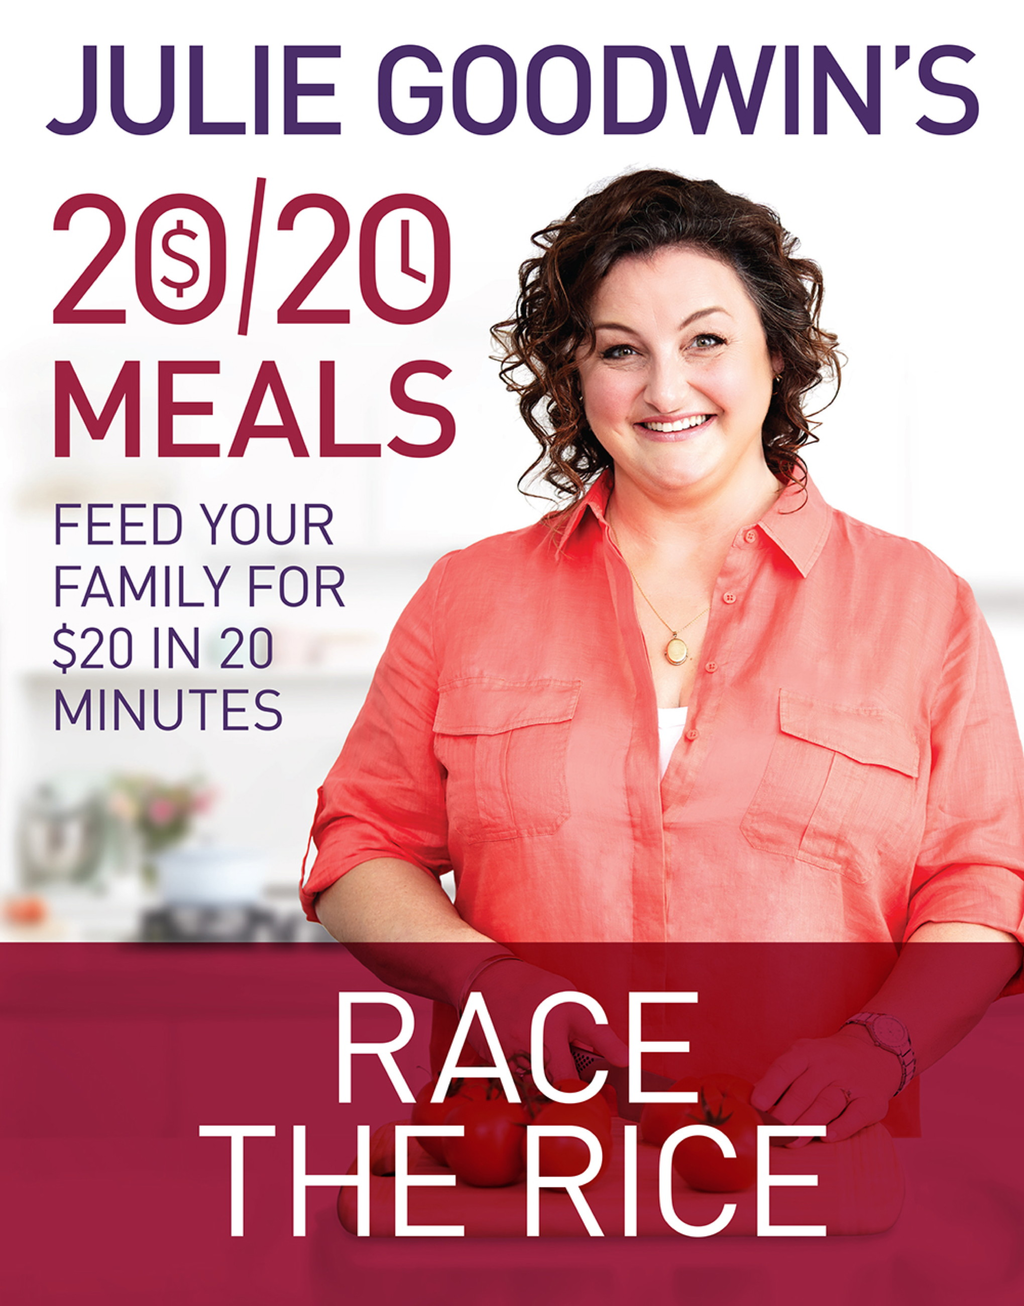 Julie Goodwin's 20/20 Meals: Race the Rice